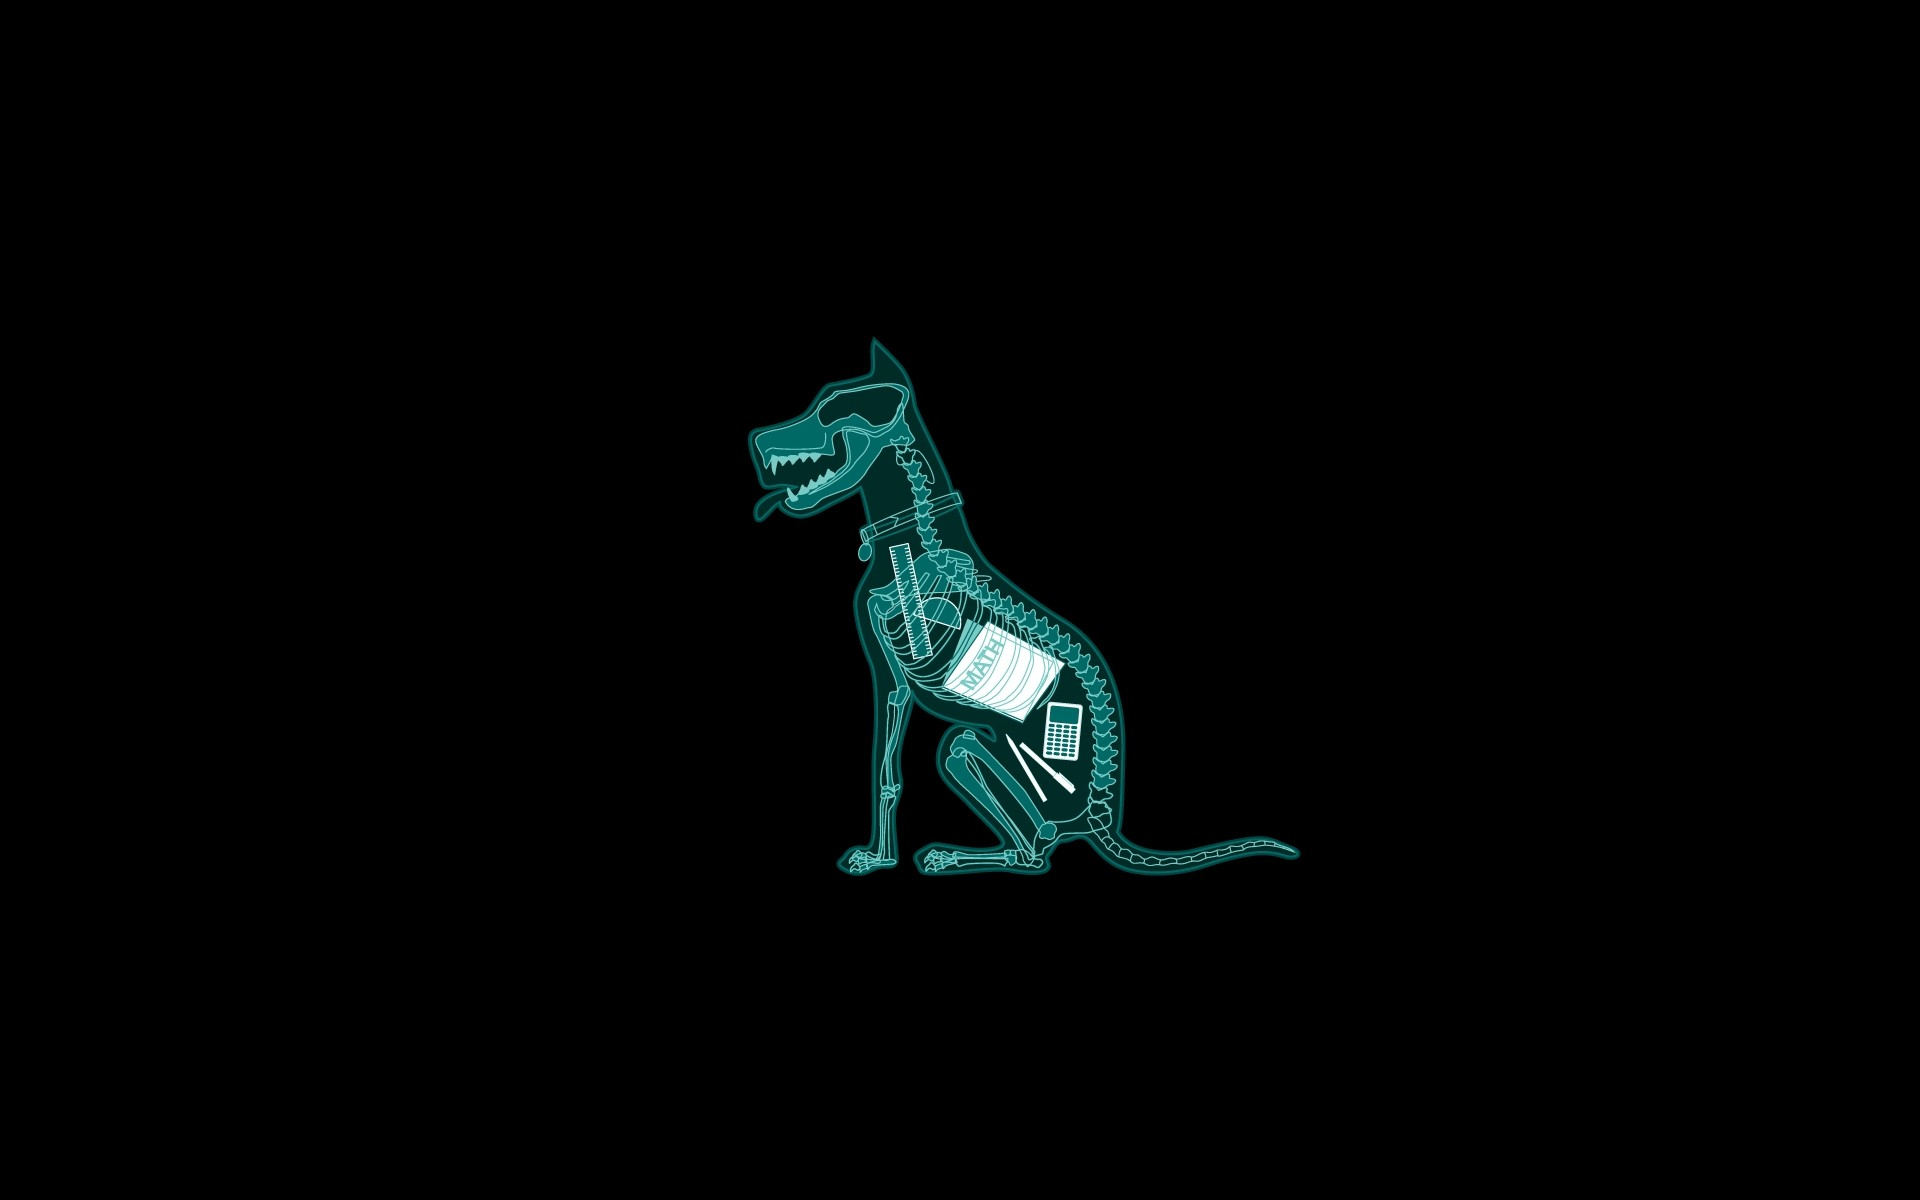 Dog skeleton funny wallpaper